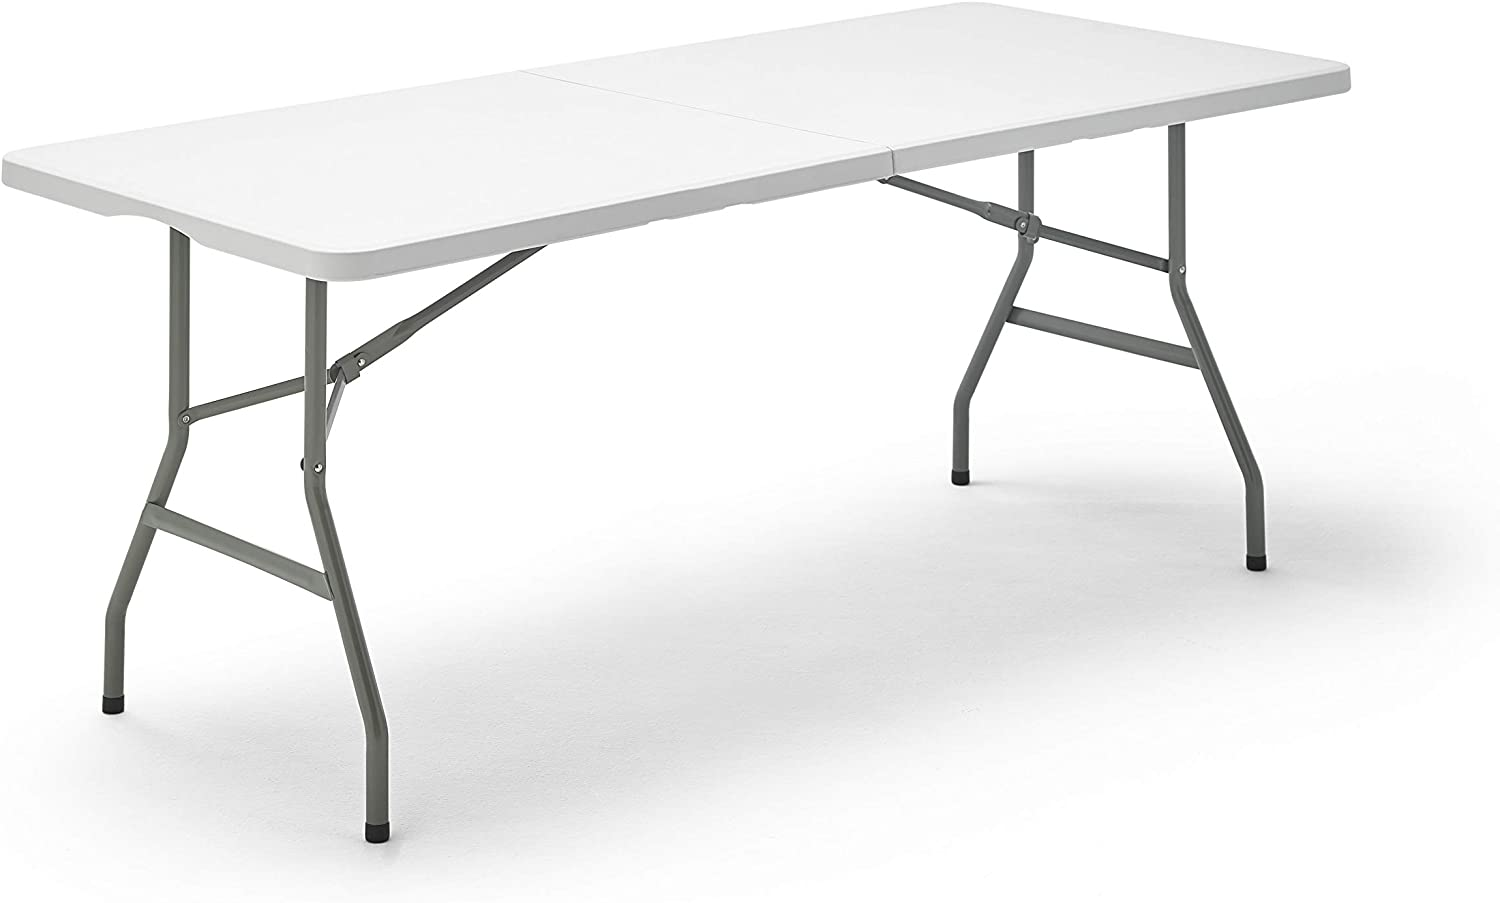 KitGarden Folding 180 - Mesa Plegable, color Blanco, 180x74x74 cm